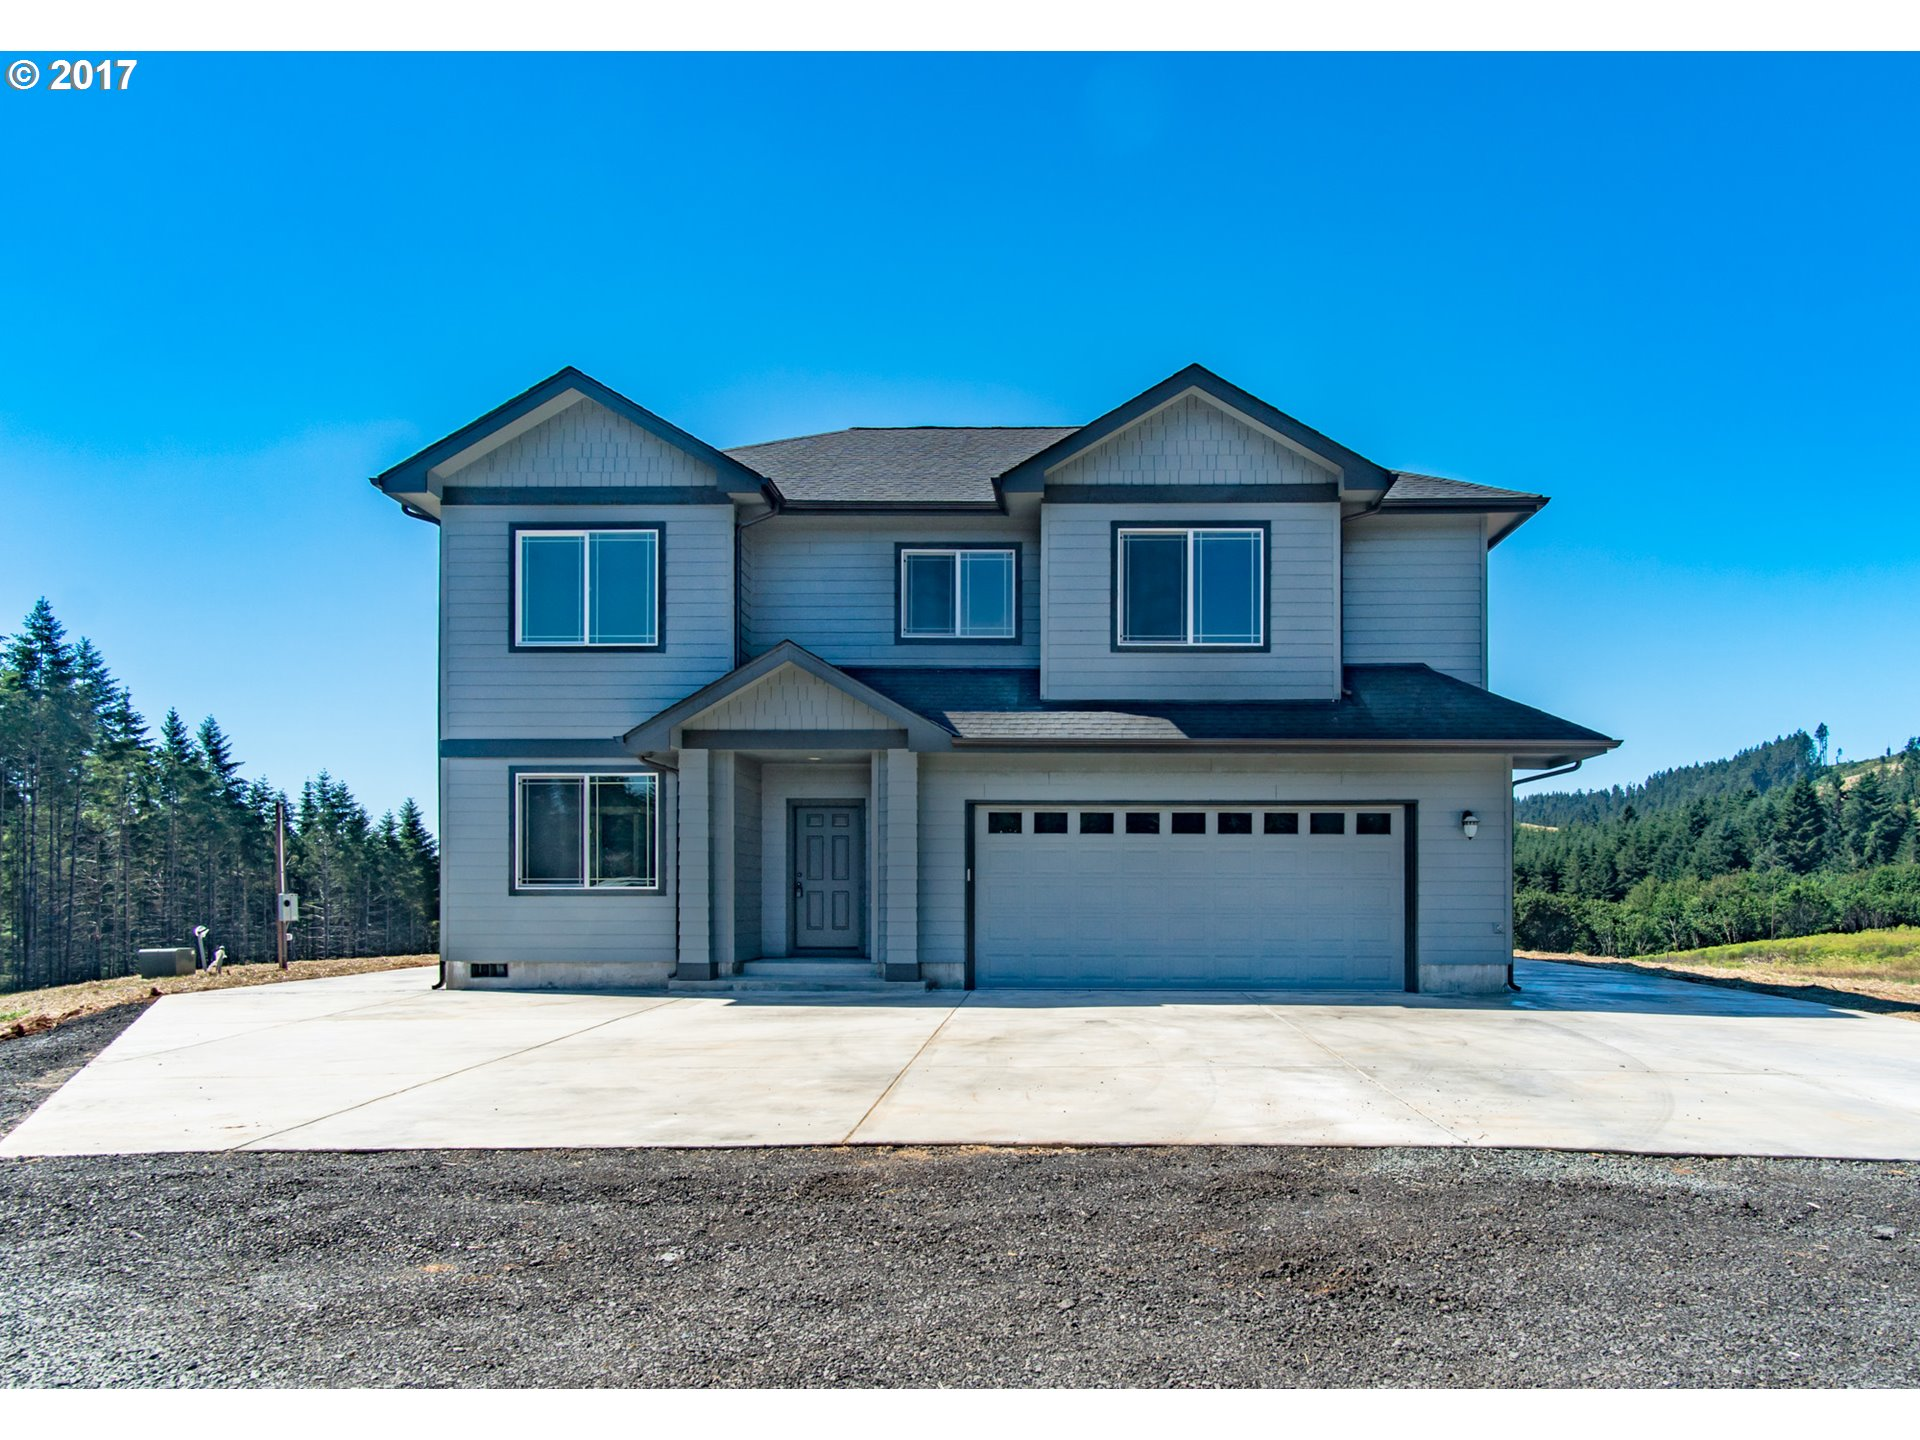 1190 TERRITORIAL HWY, Cottage Grove, OR 97424